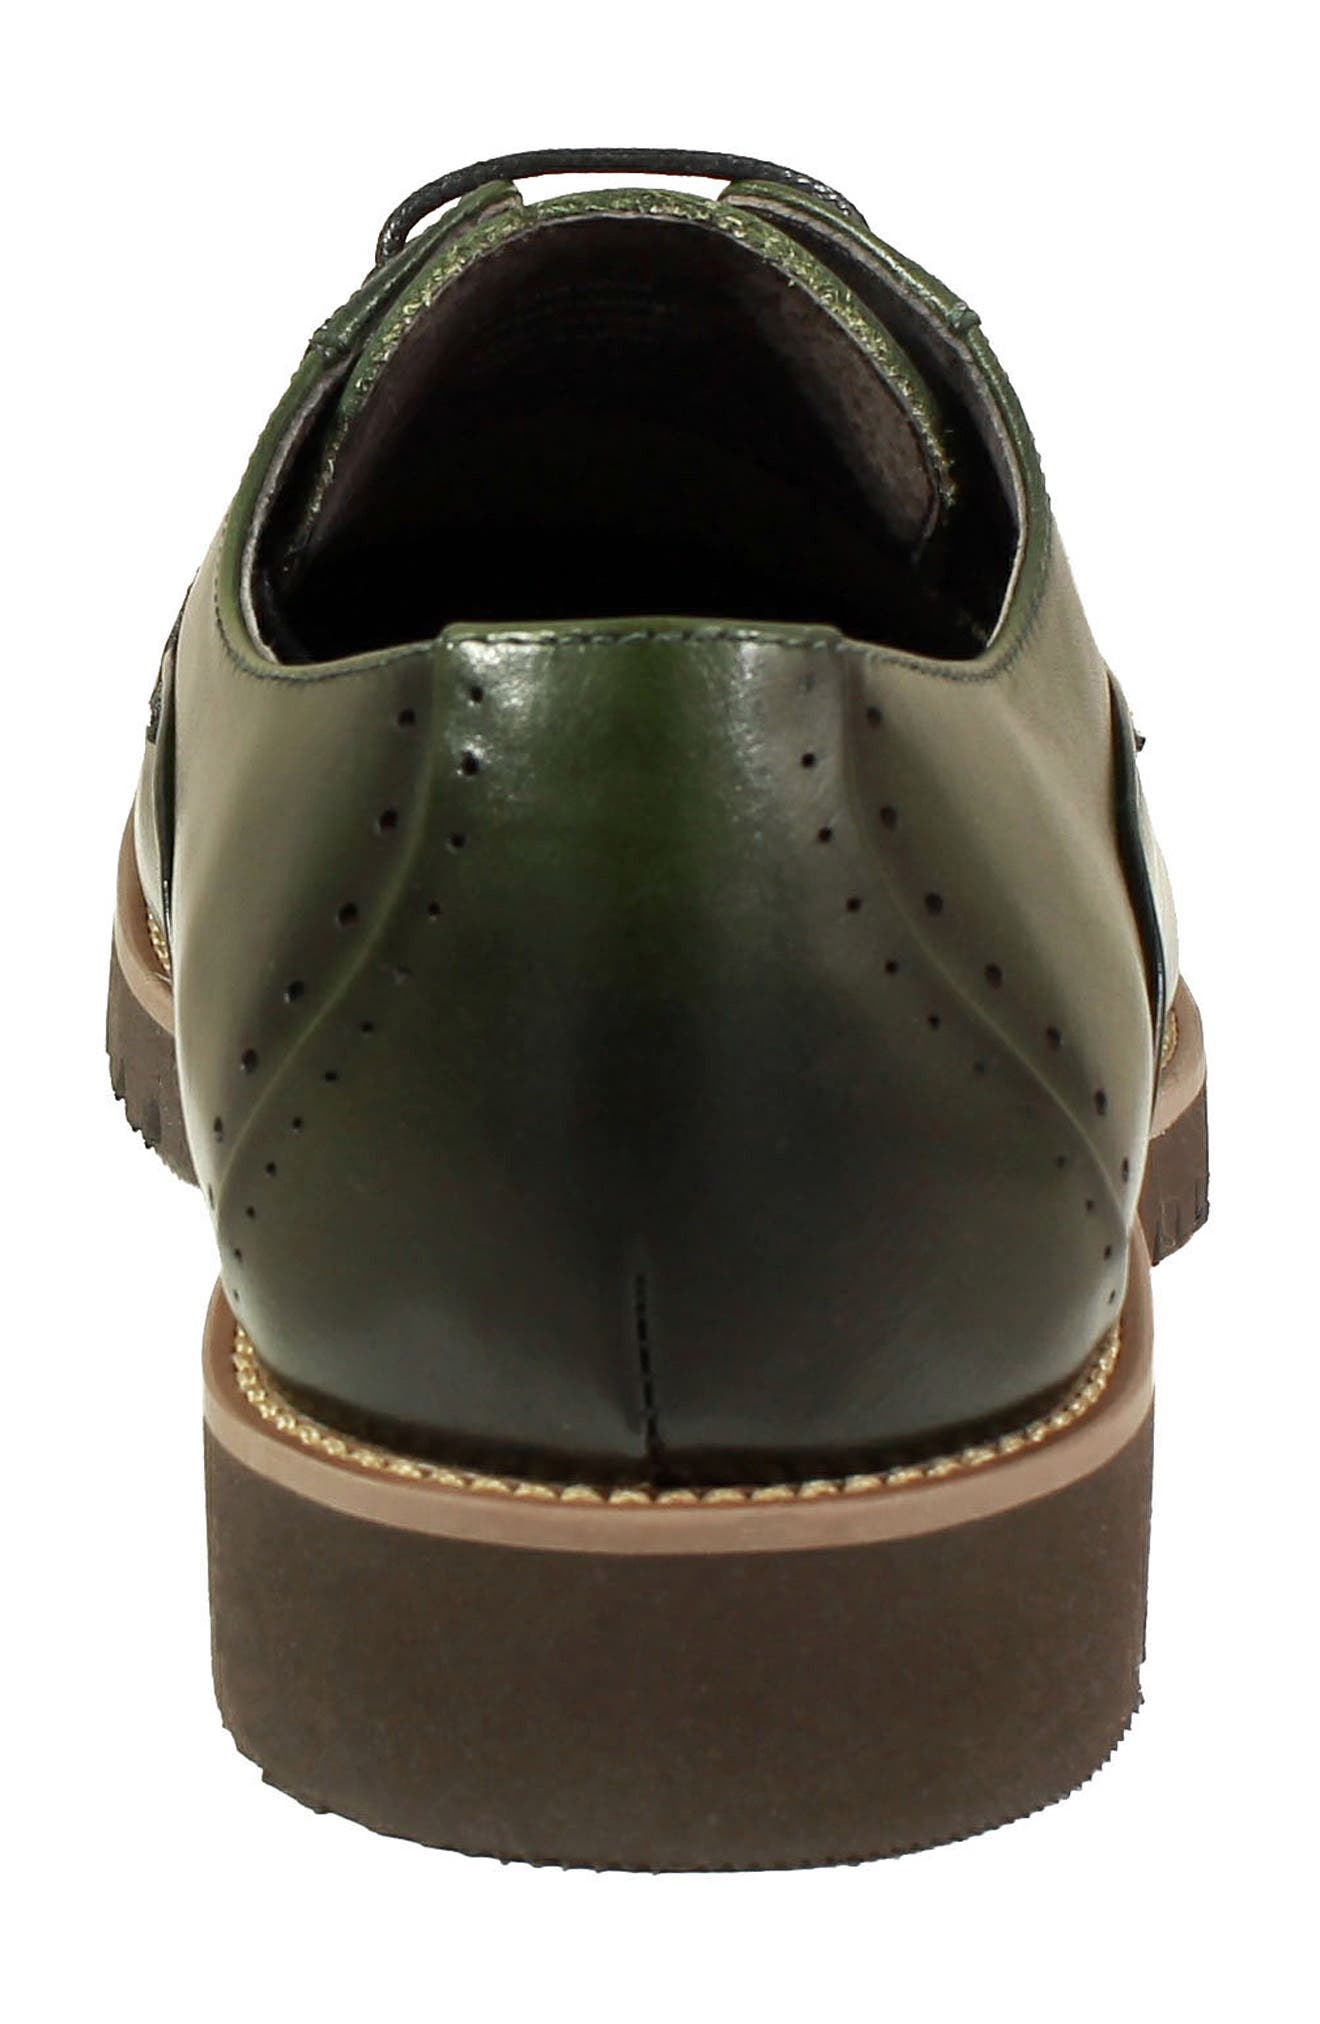 Barcliff Cap Toe Derby,                             Alternate thumbnail 8, color,                             CARGO GREEN LEATHER